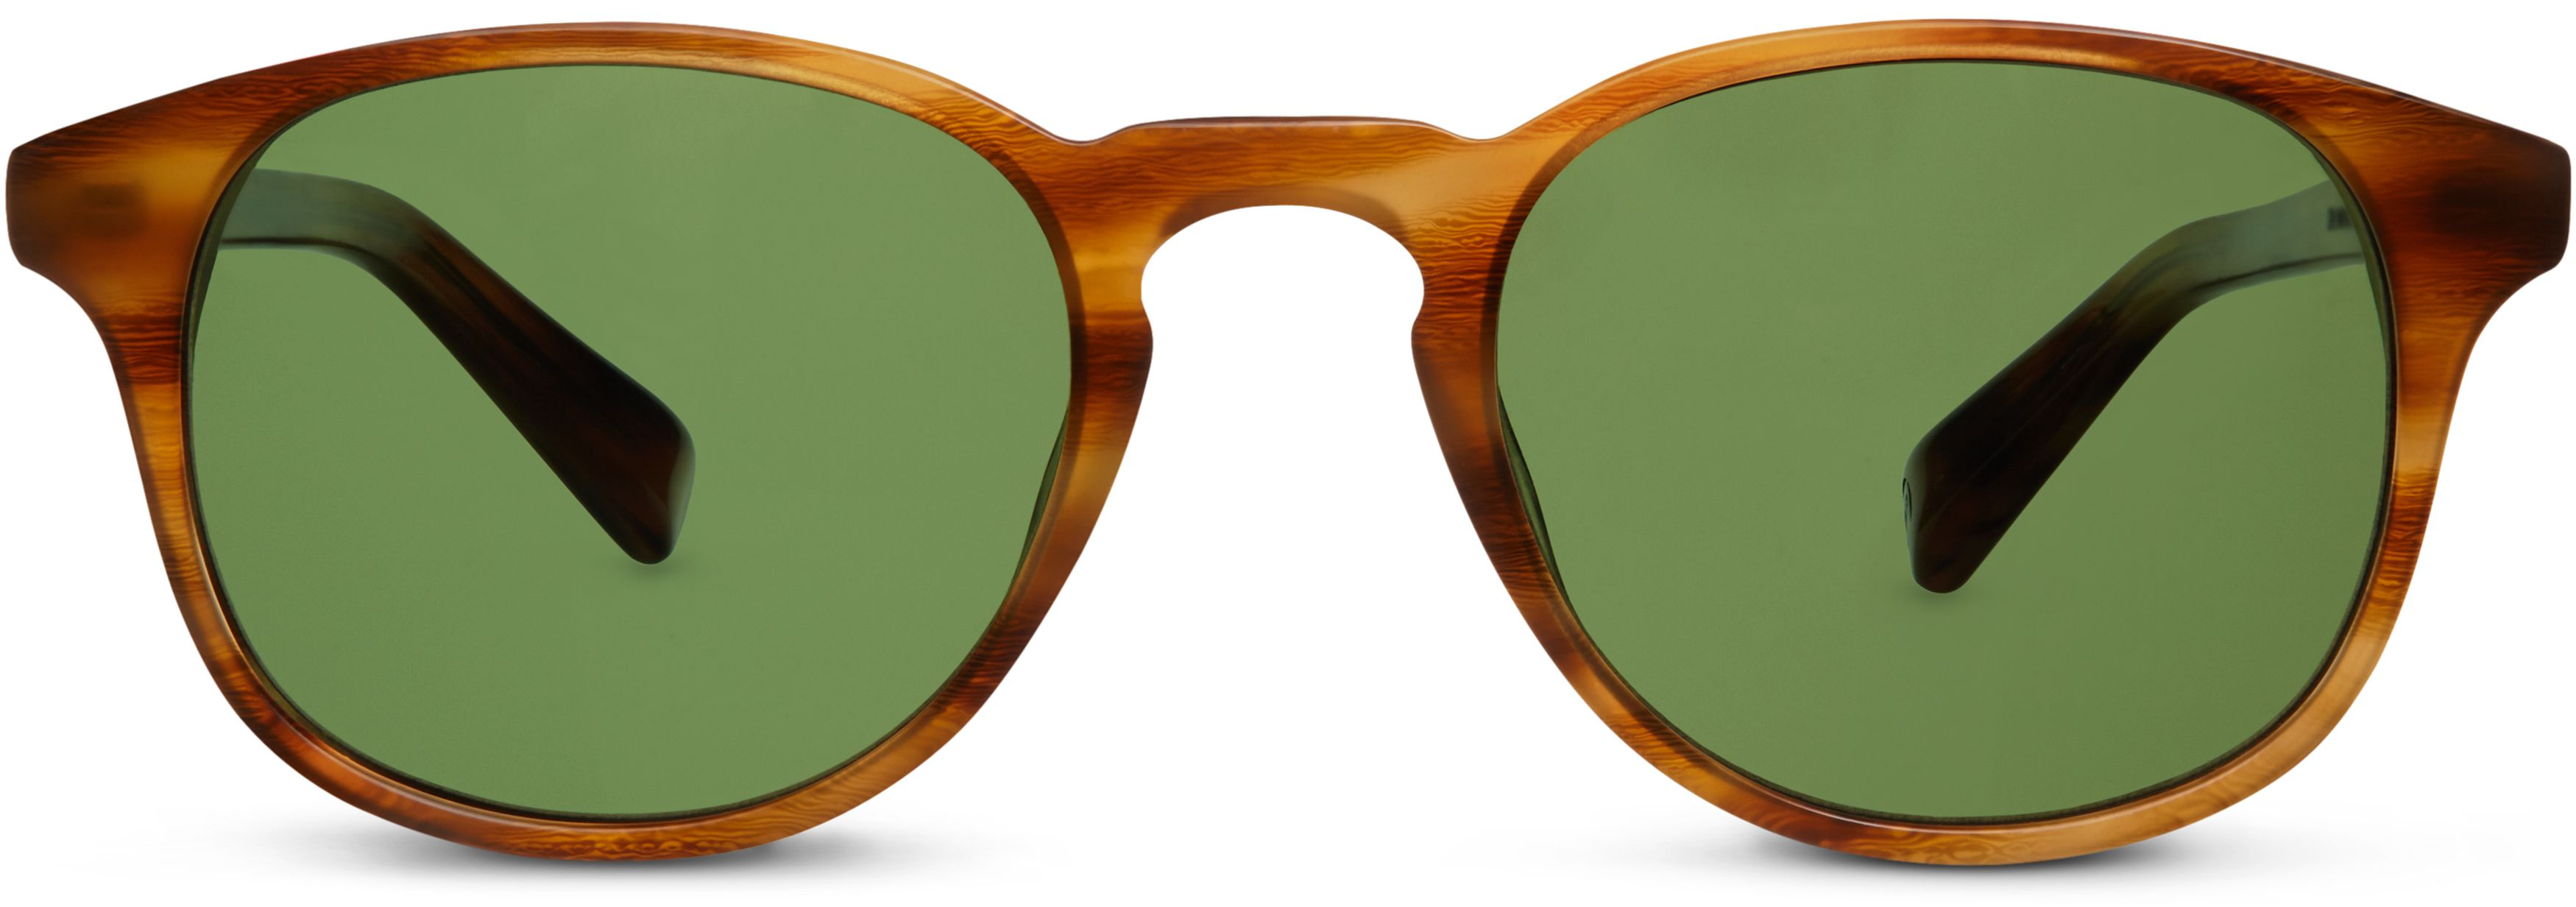 68c2a6be4f Downing Sunglasses in English Oak for Men